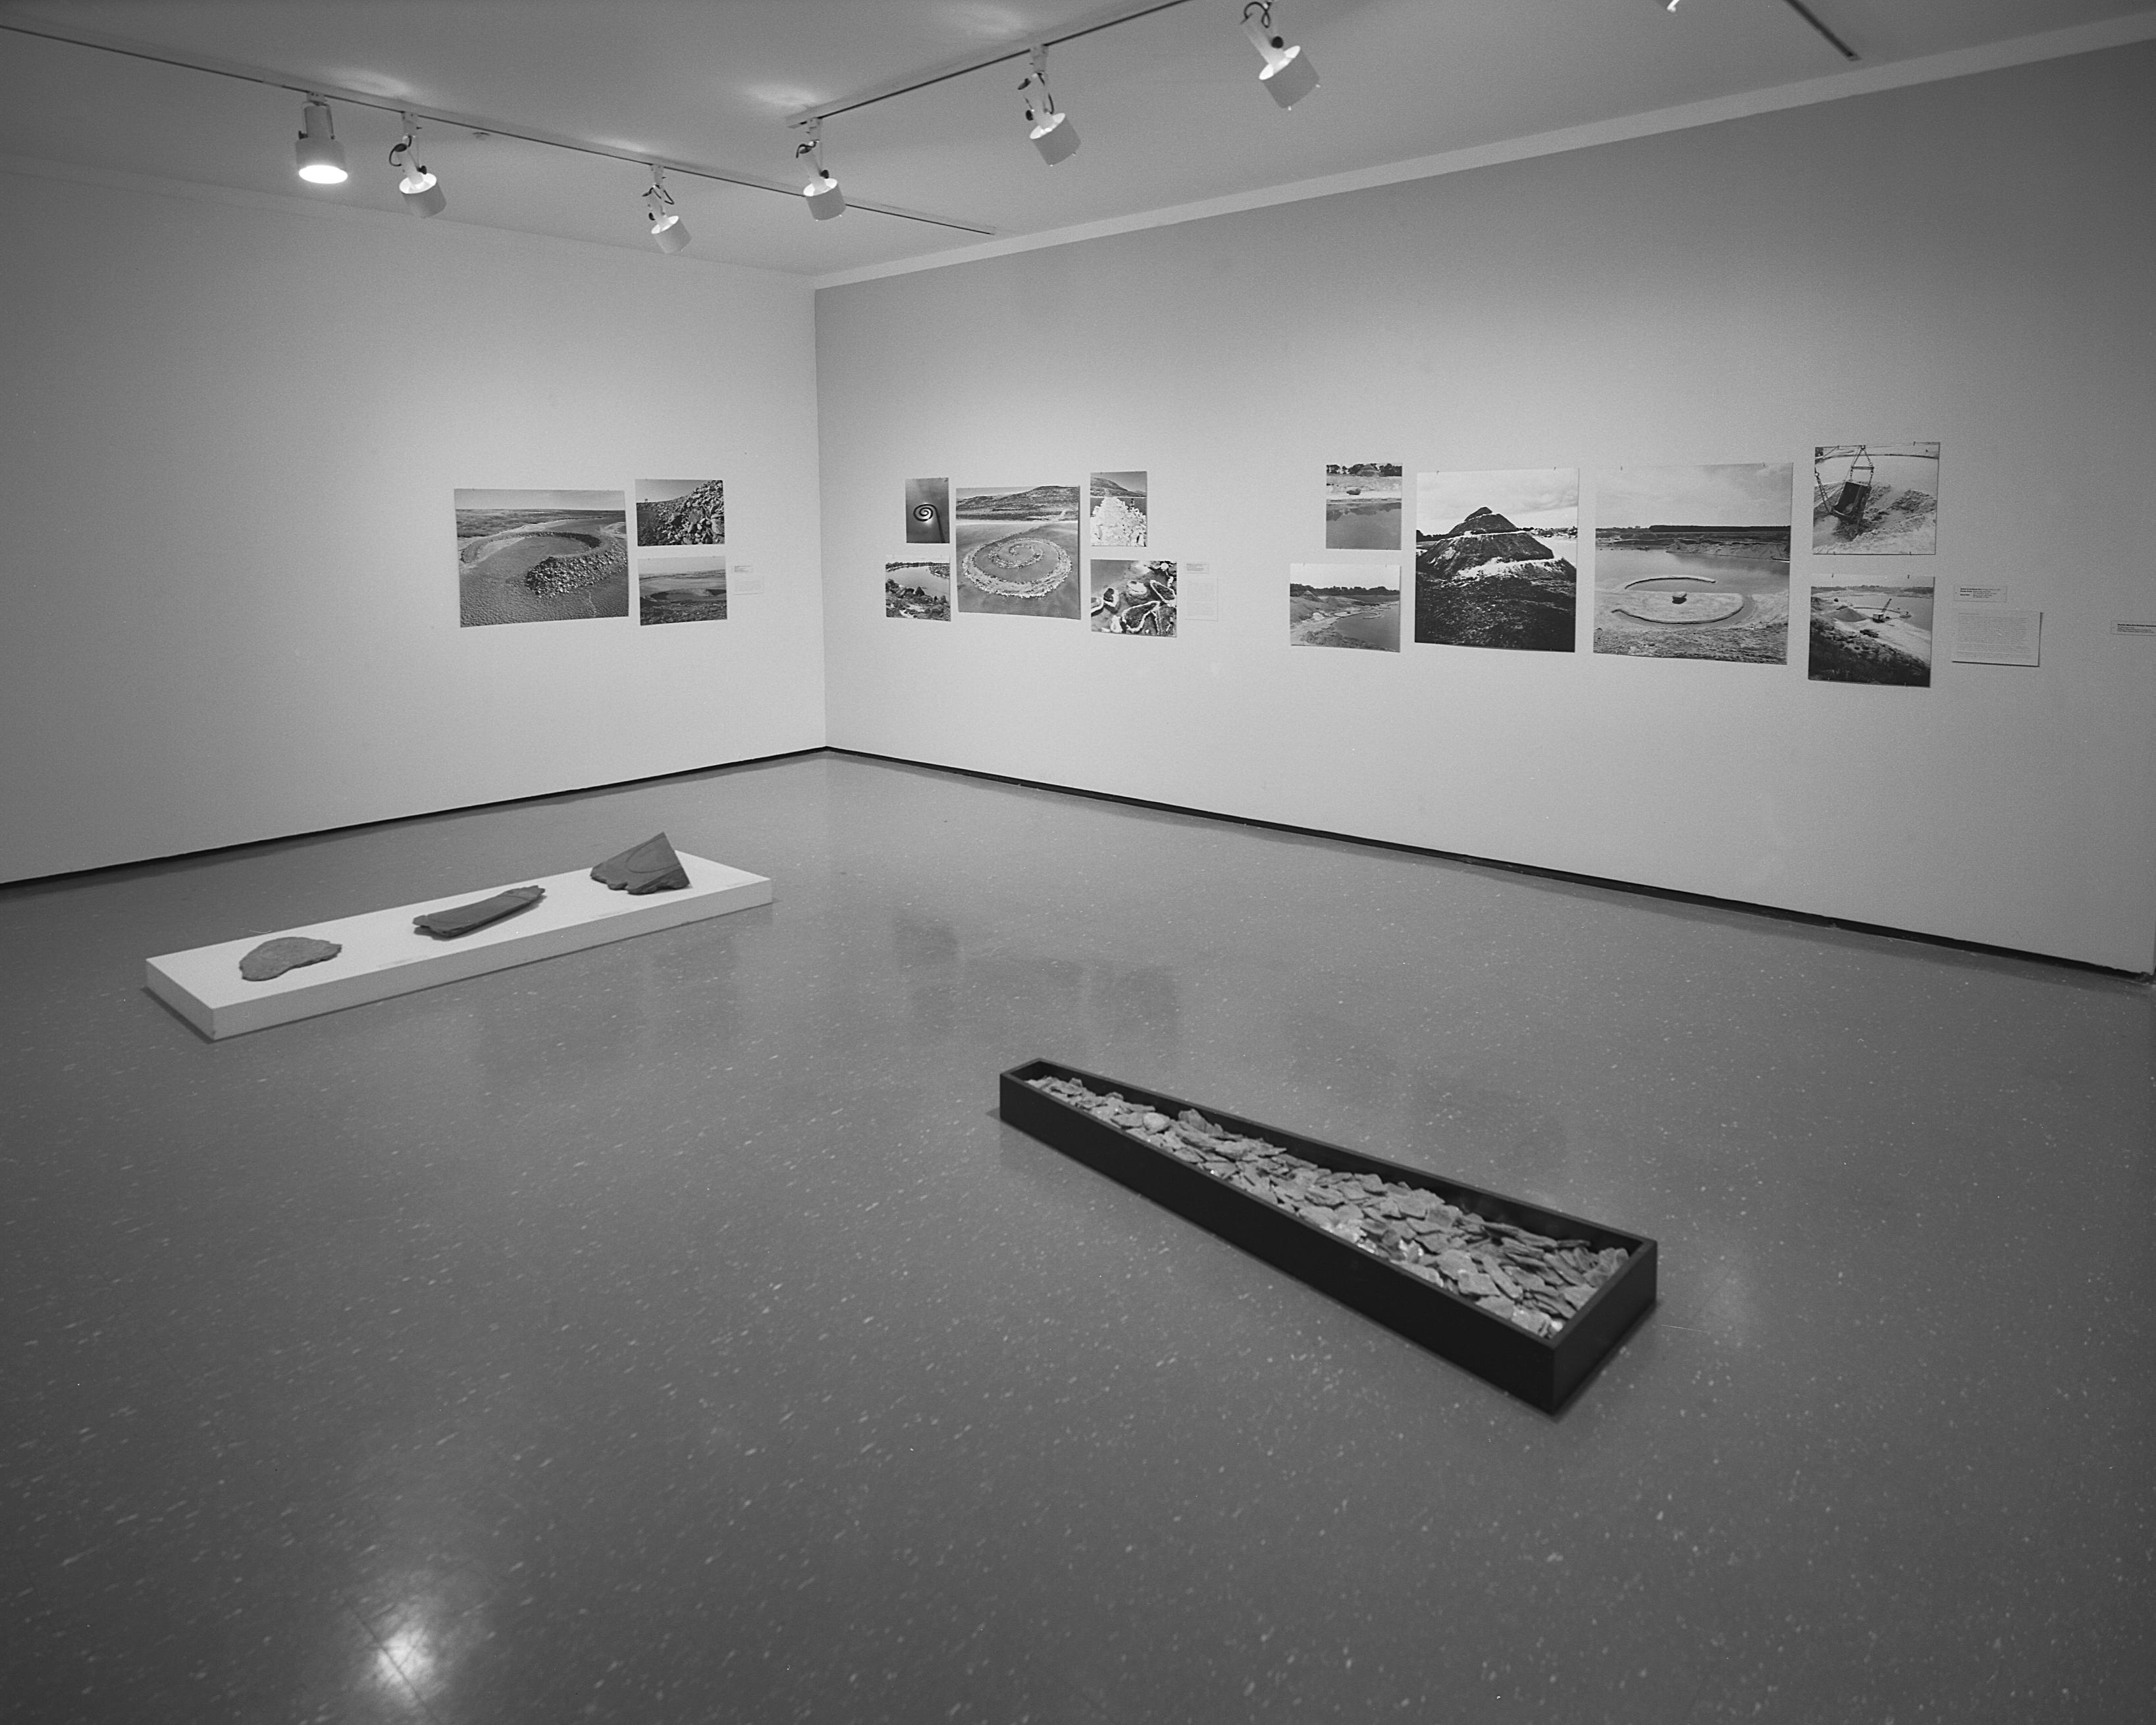 Black-and-white installation view of photographs and two sculptures that feature rocks